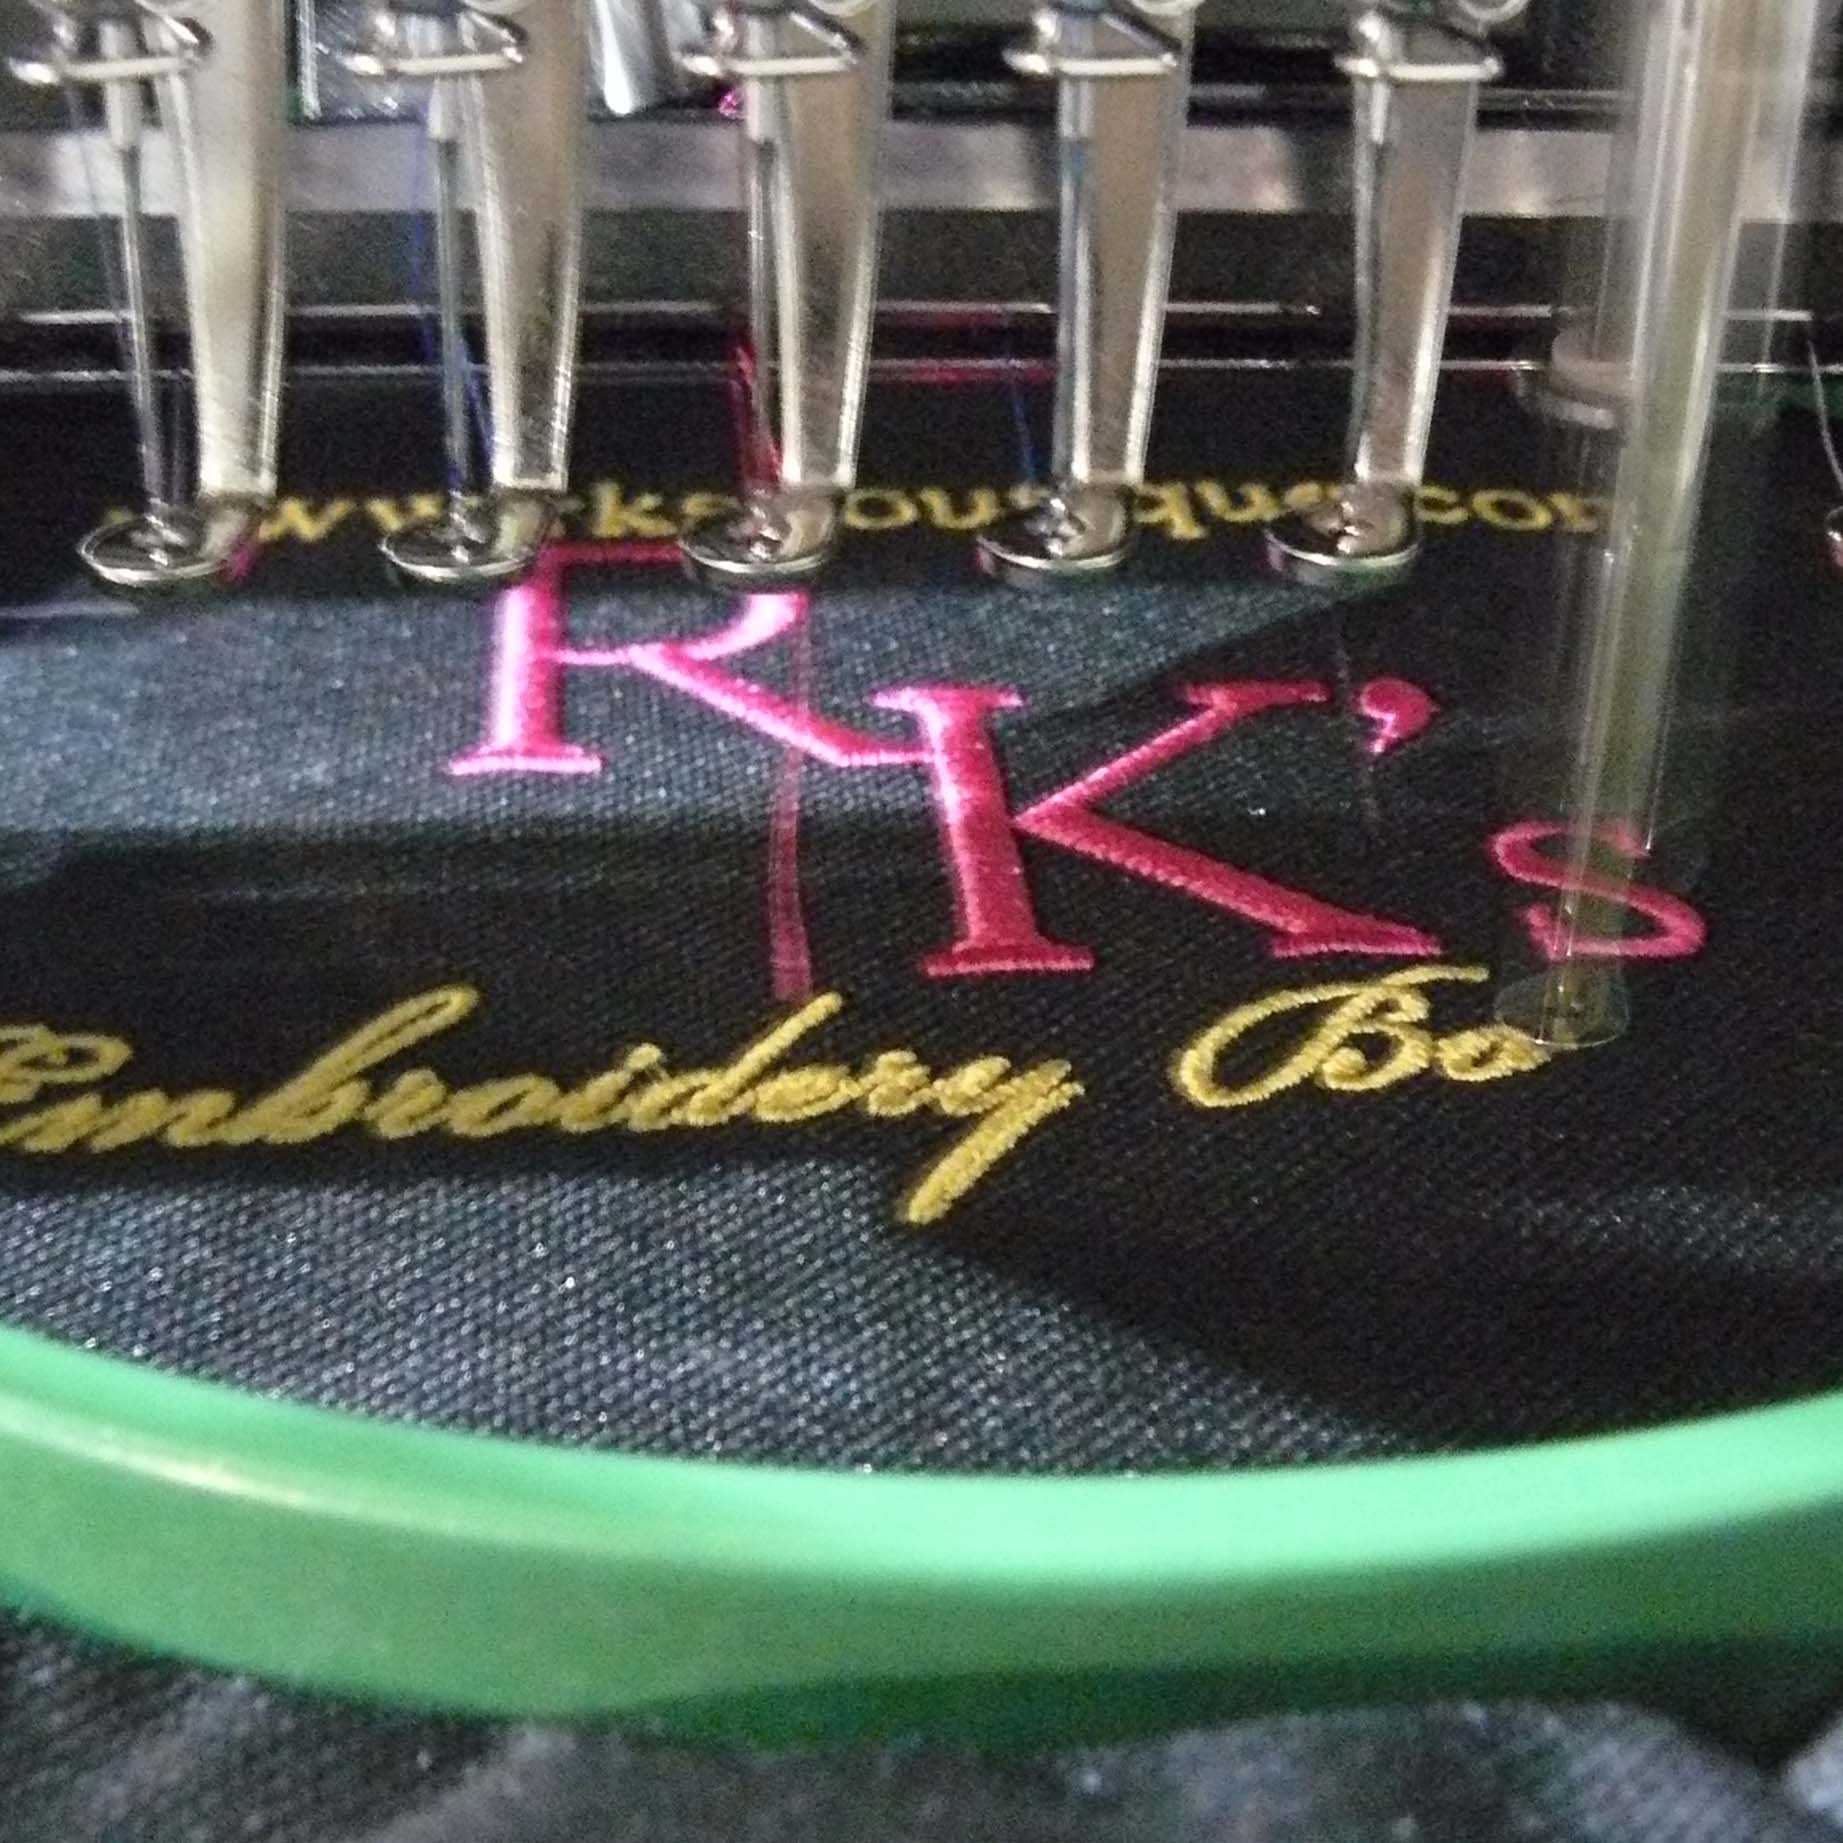 RK's Custom Embroidery Shop - Create the #perfectgift when you choose from thousands of designs embroidered on bags, aprons, scarves or hats!